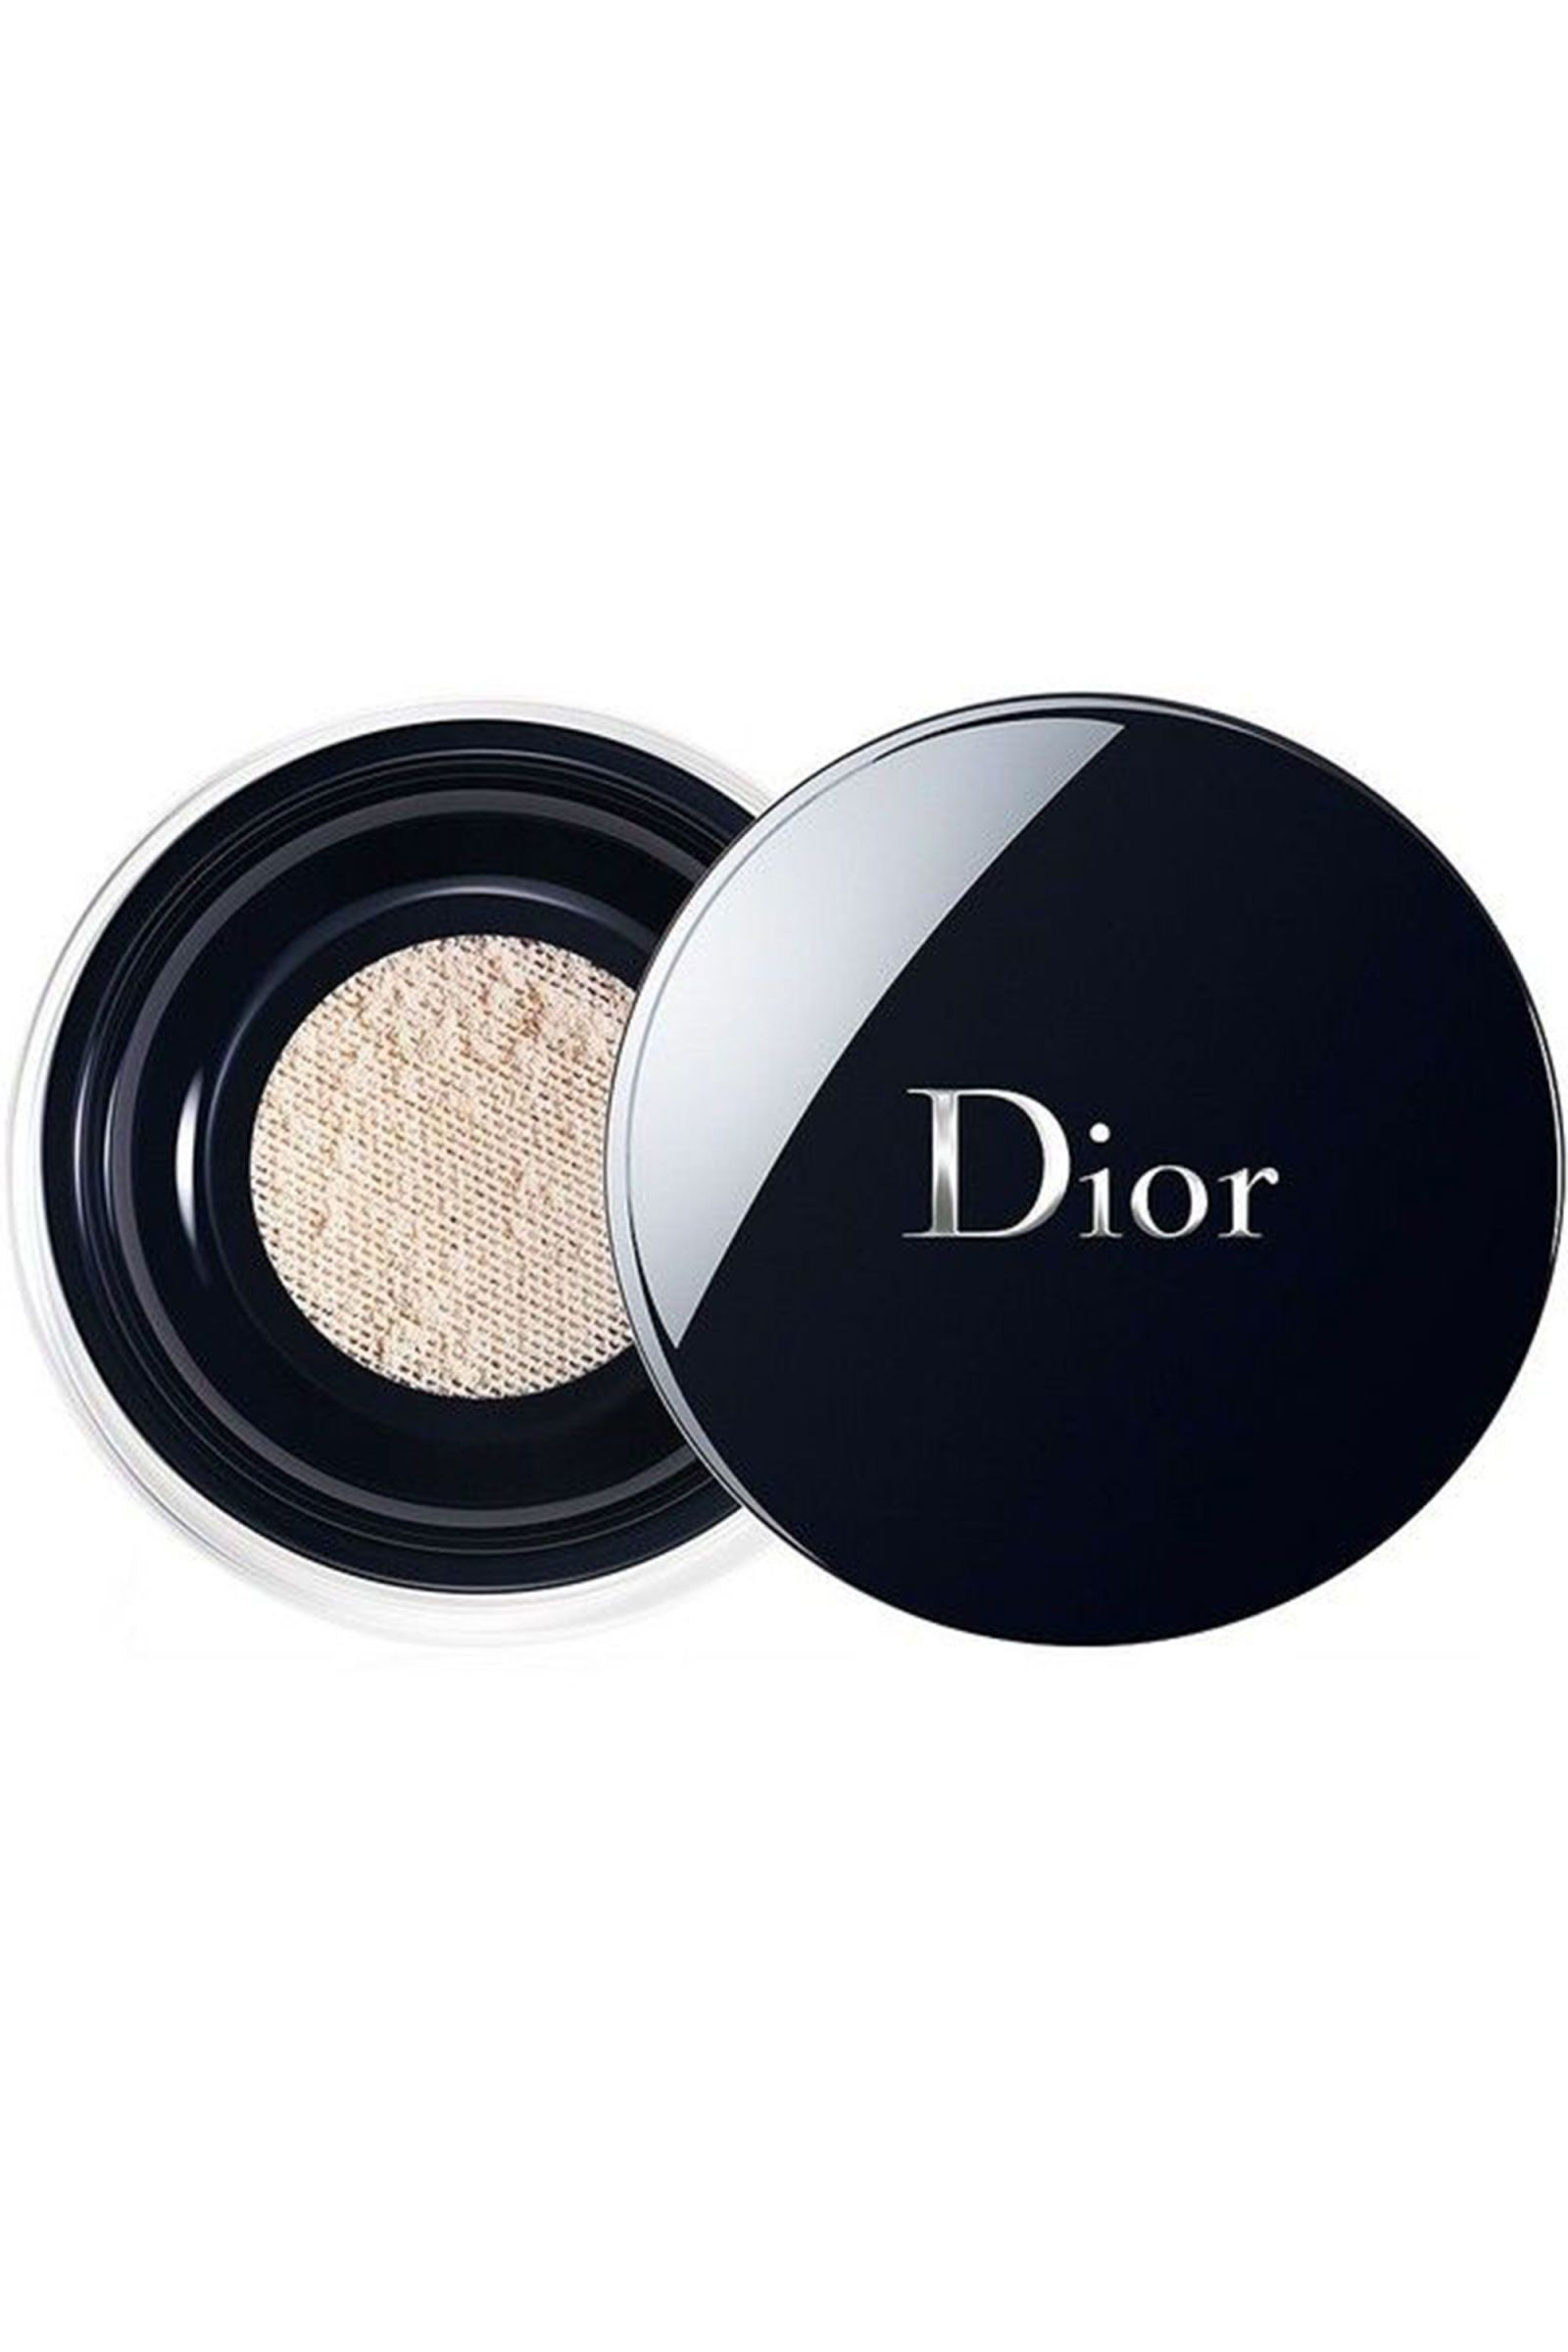 The best face powders to fight shine and keep your makeup